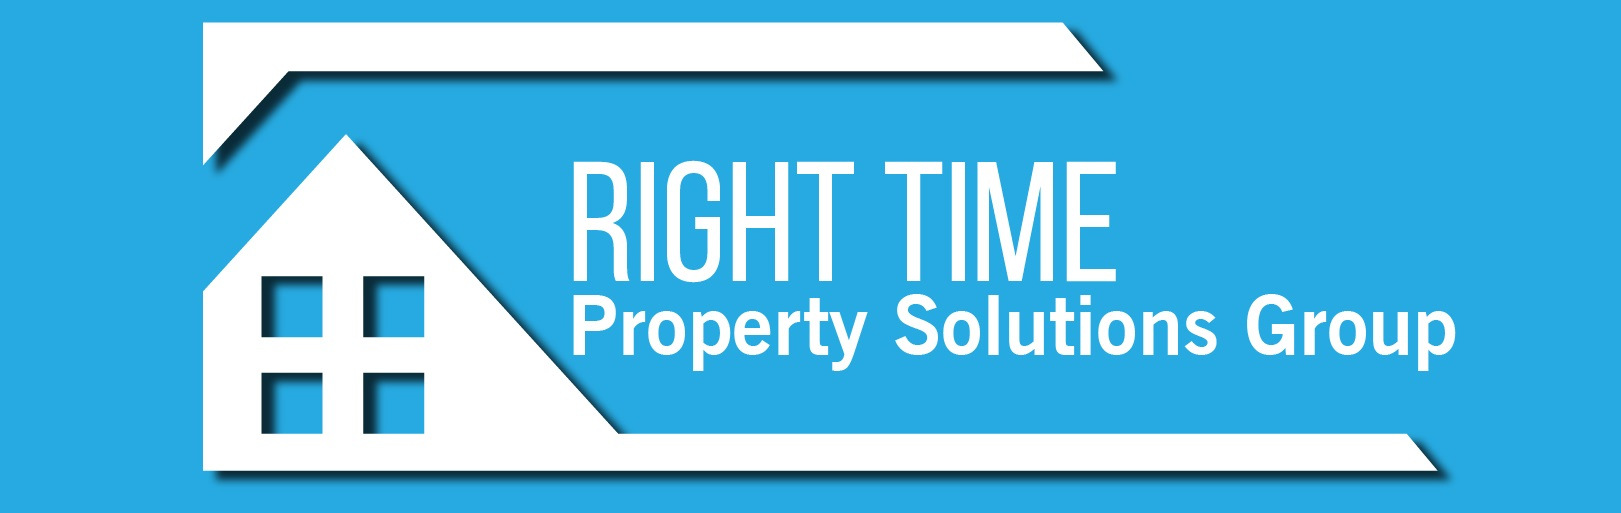 Right Time Property Solutions Group